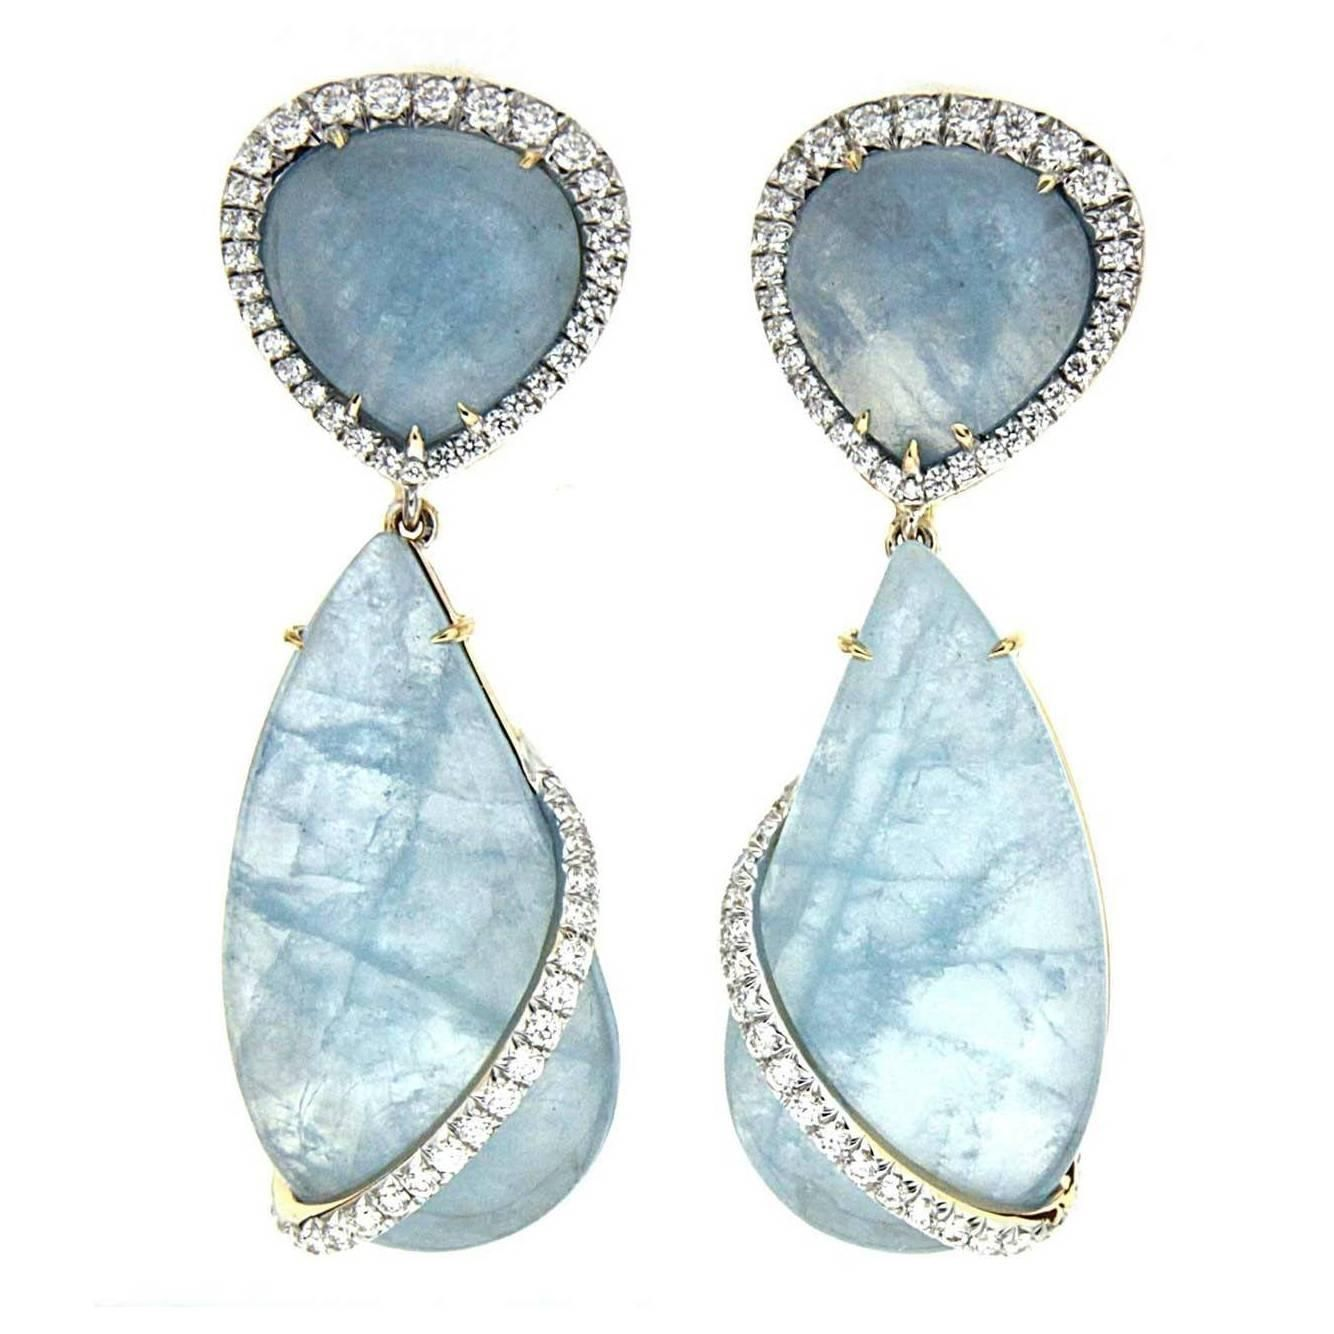 Aquamarine Diamond Gold Dangle Earrings   From a unique collection of vintage clip-on earrings at https://www.1stdibs.com/jewelry/earrings/clip-on-earrings/